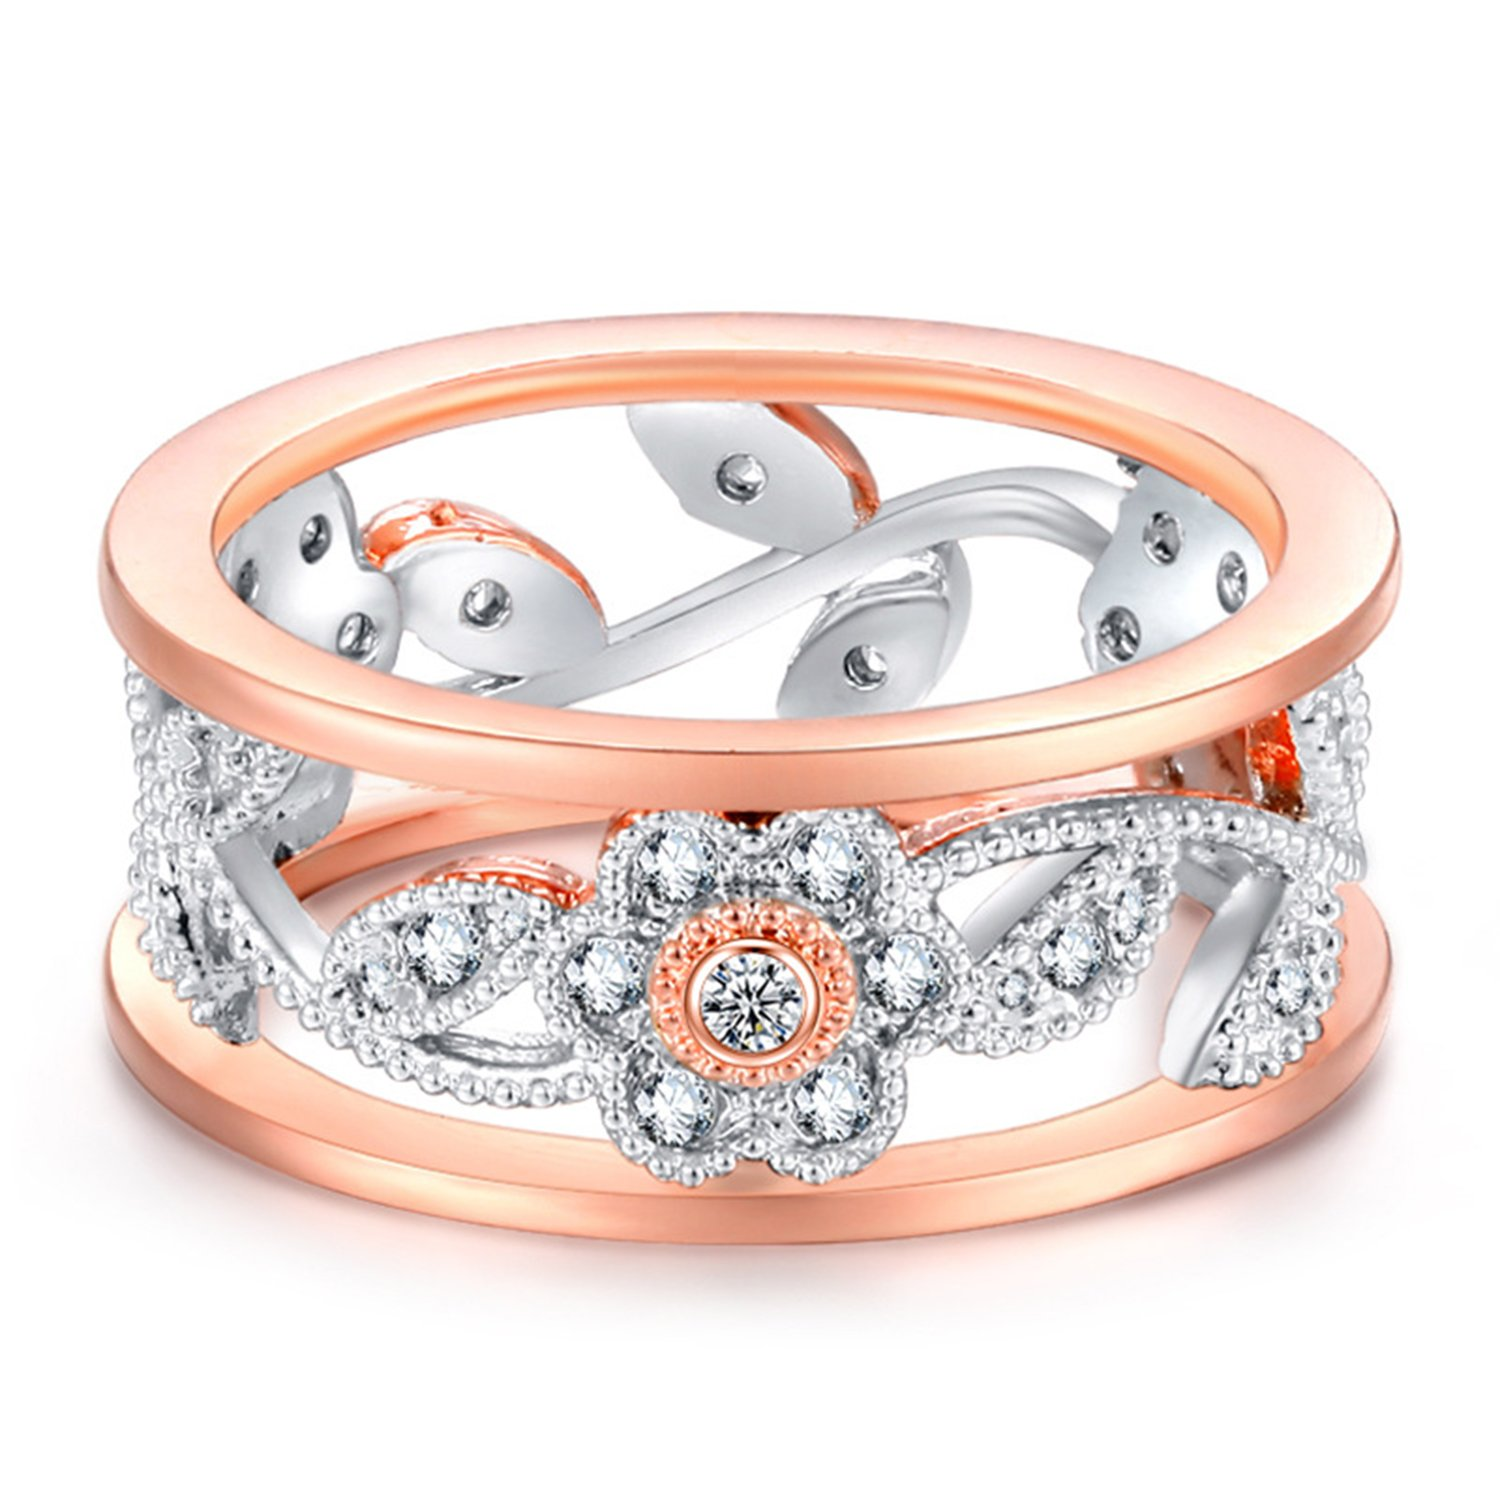 LILILEO Jewelry 8mm Alloy Openwork Lucky Flower Vine Leaves Inlaid Zircon Ring For Women's Wedding Rings by LILILEO